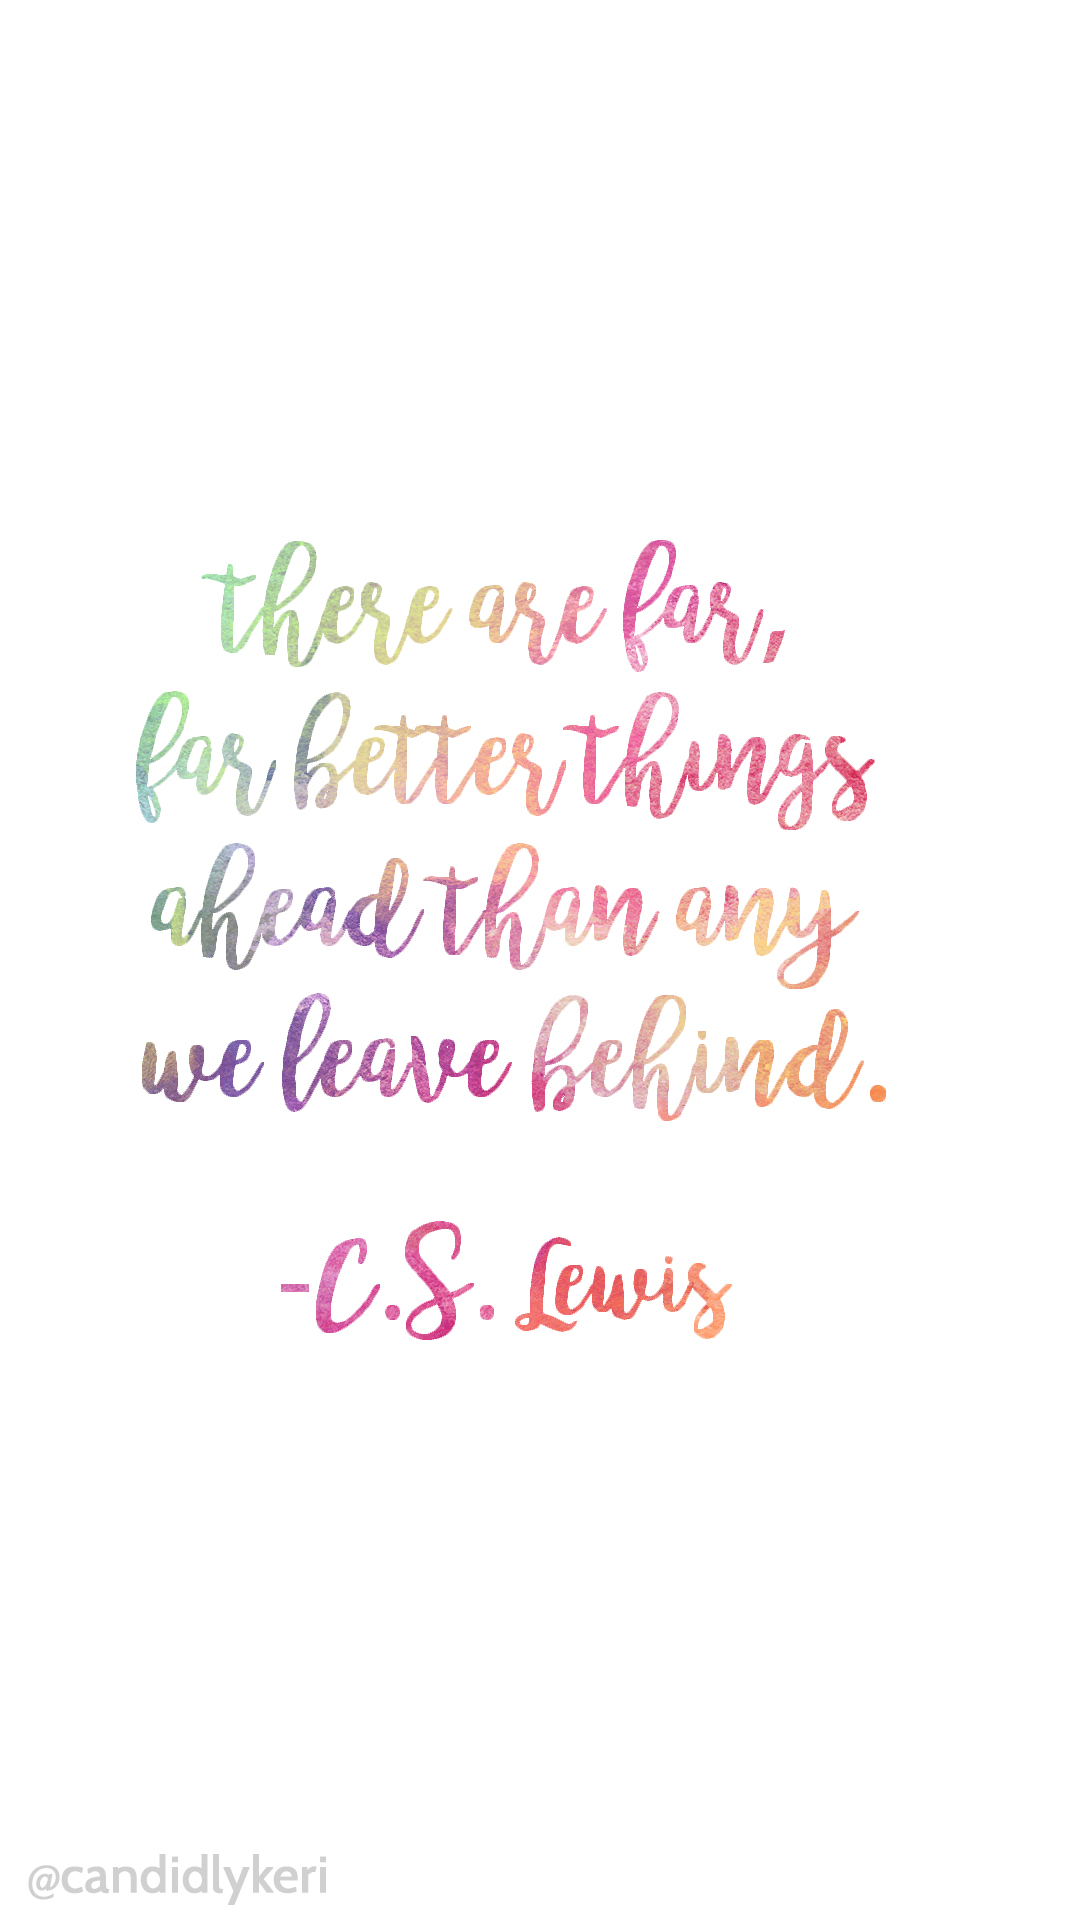 Colorful-watercolor-quote-background-CS-Lewis-and-white-iphone-andriod-desktop-free-download-wallpaper-wp424643-1